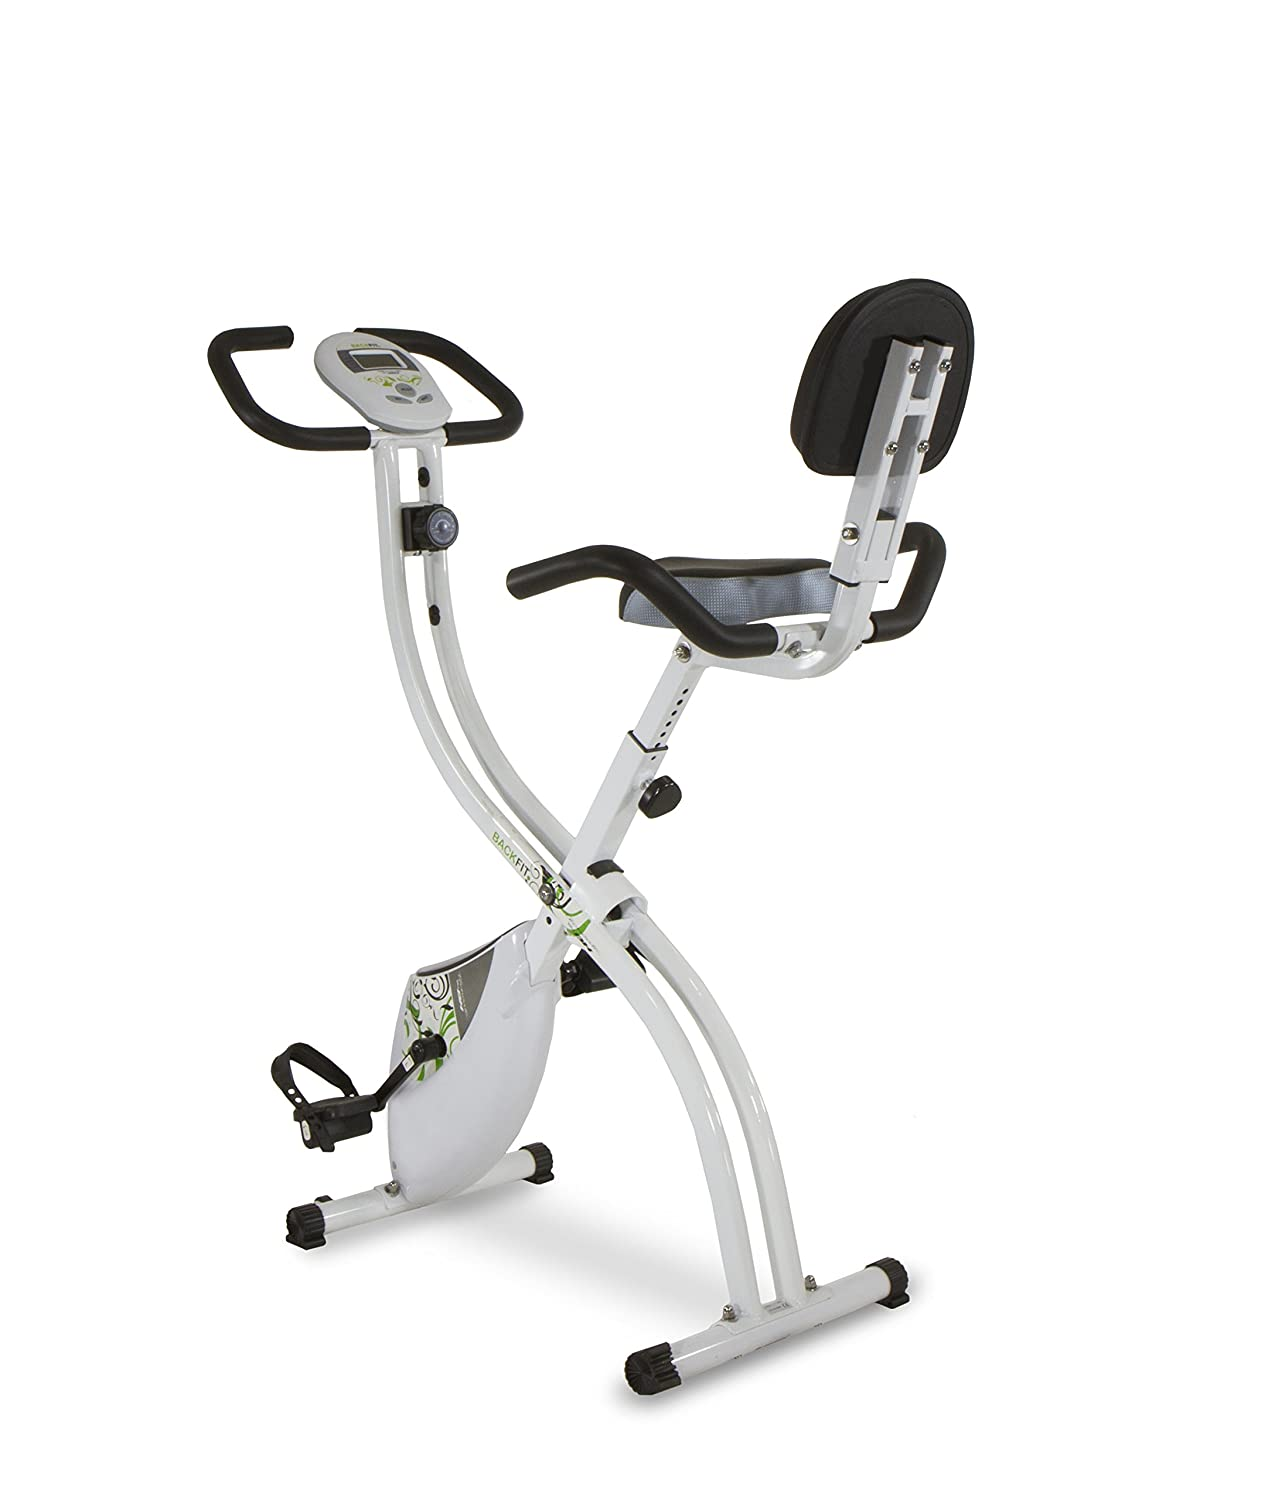 Tecnovita by BH BACK FIT YF91. Flywheel equivalent to 18 lbs. Get in shape in the comfort of your own home! Foldable fitness bicycle. Backrest and easy access. LCD Monitor. Folds easily. White BH Home Fitness